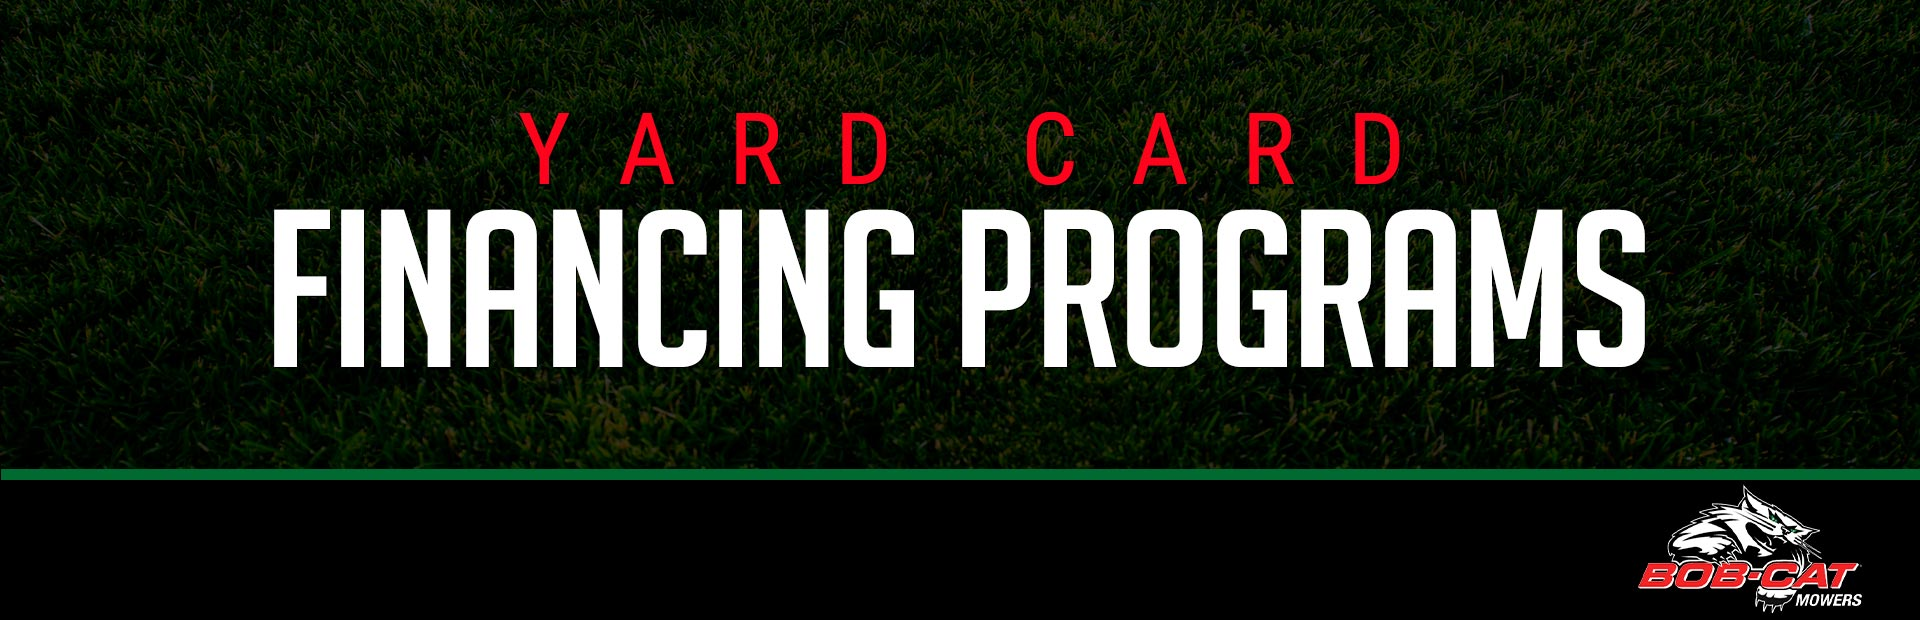 BOB-CAT®: Yard Card Financing Programs